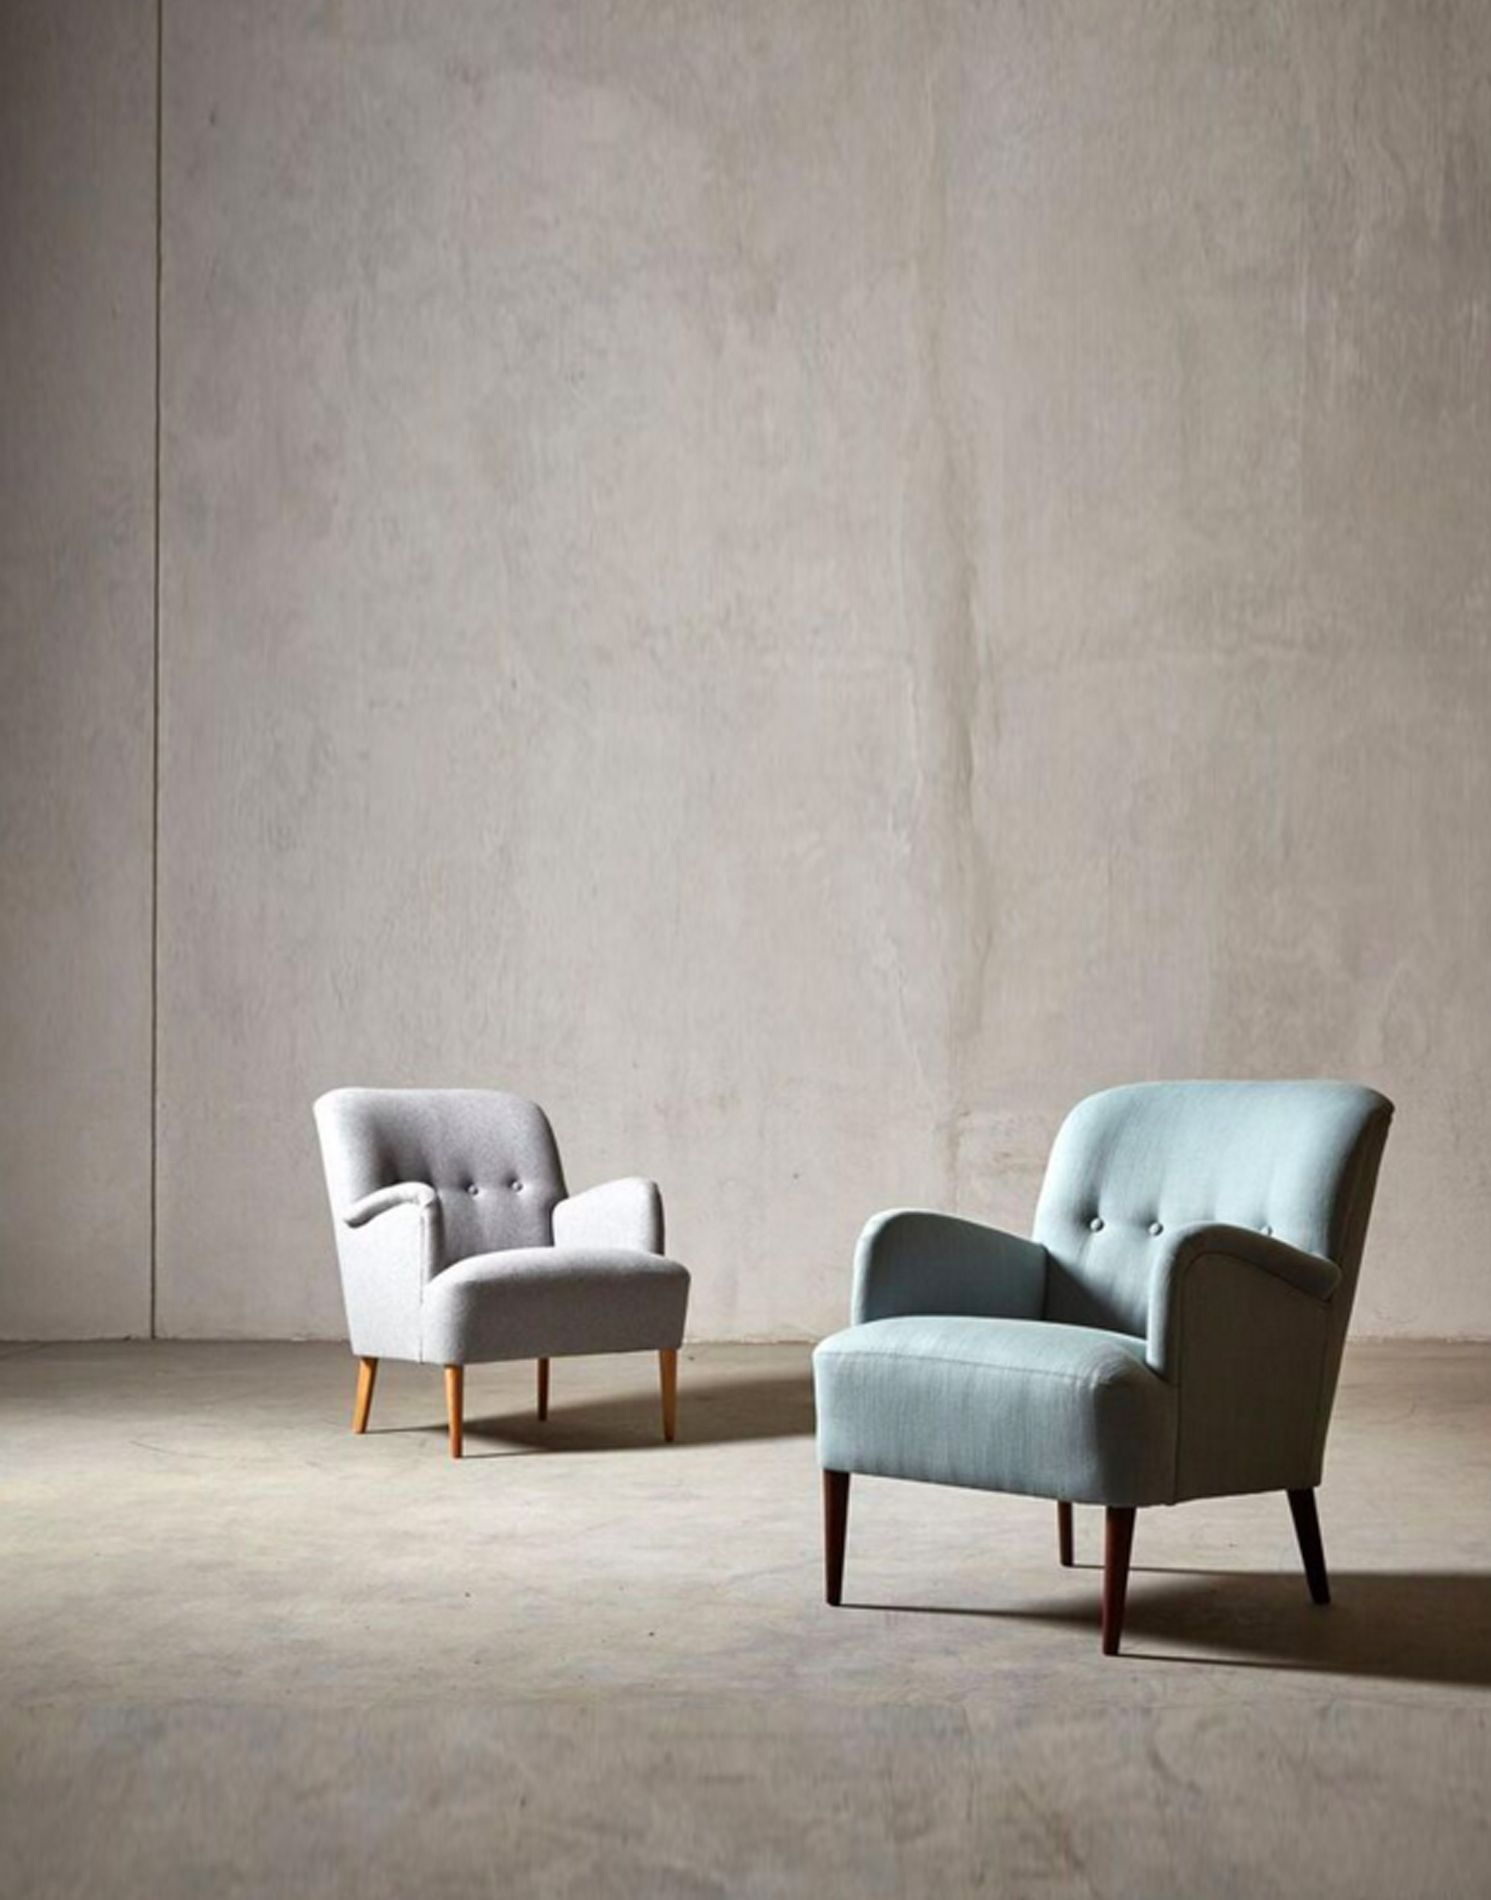 London | Armchairs, Interiors and Sitting rooms